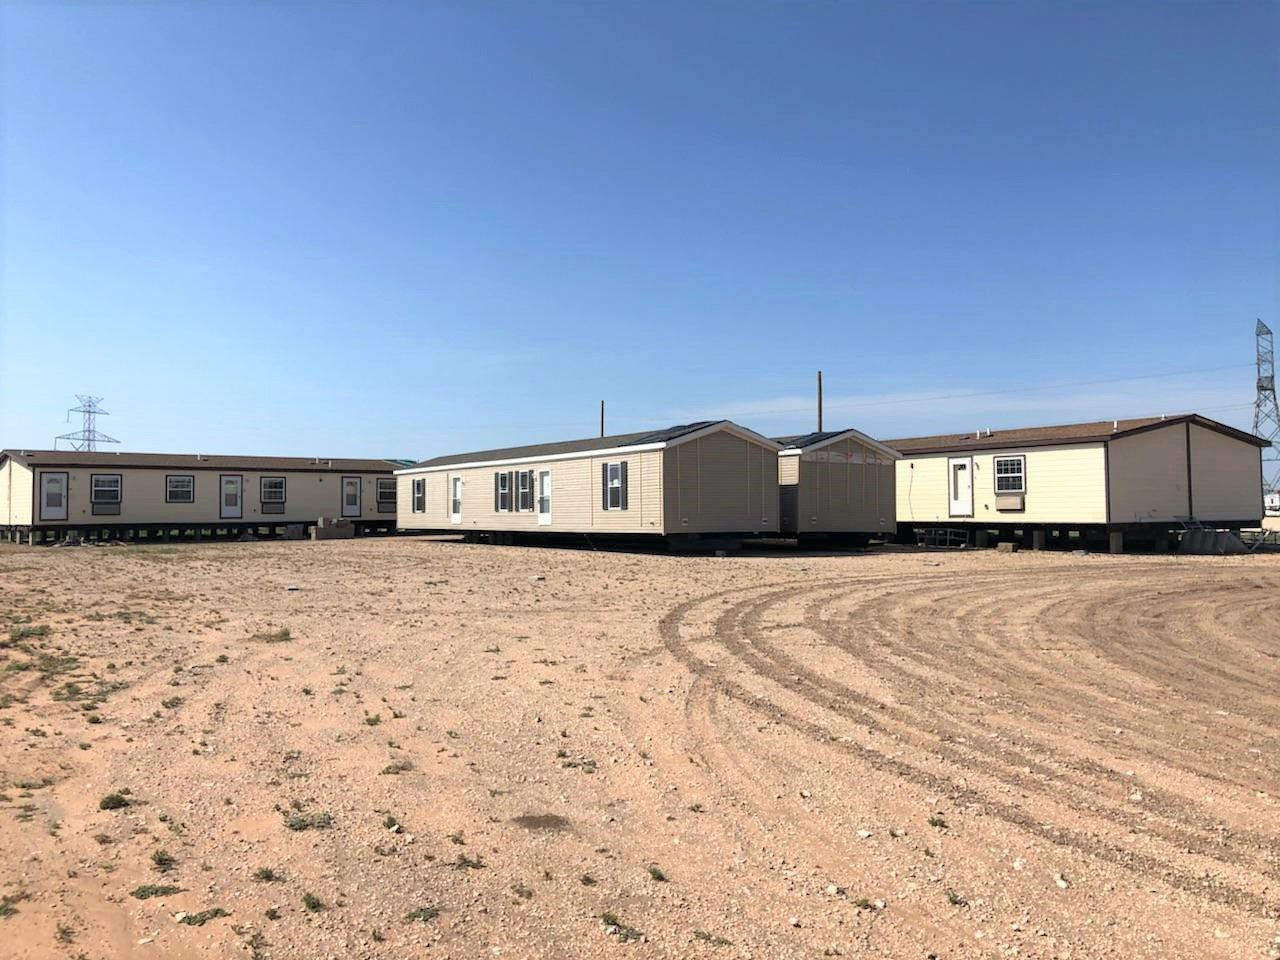 Simon Group Holdings Companies VESTA Modular and Atlas Oil Collaborate to Provide Temporary Housing for Frac and Rig Fueling Business